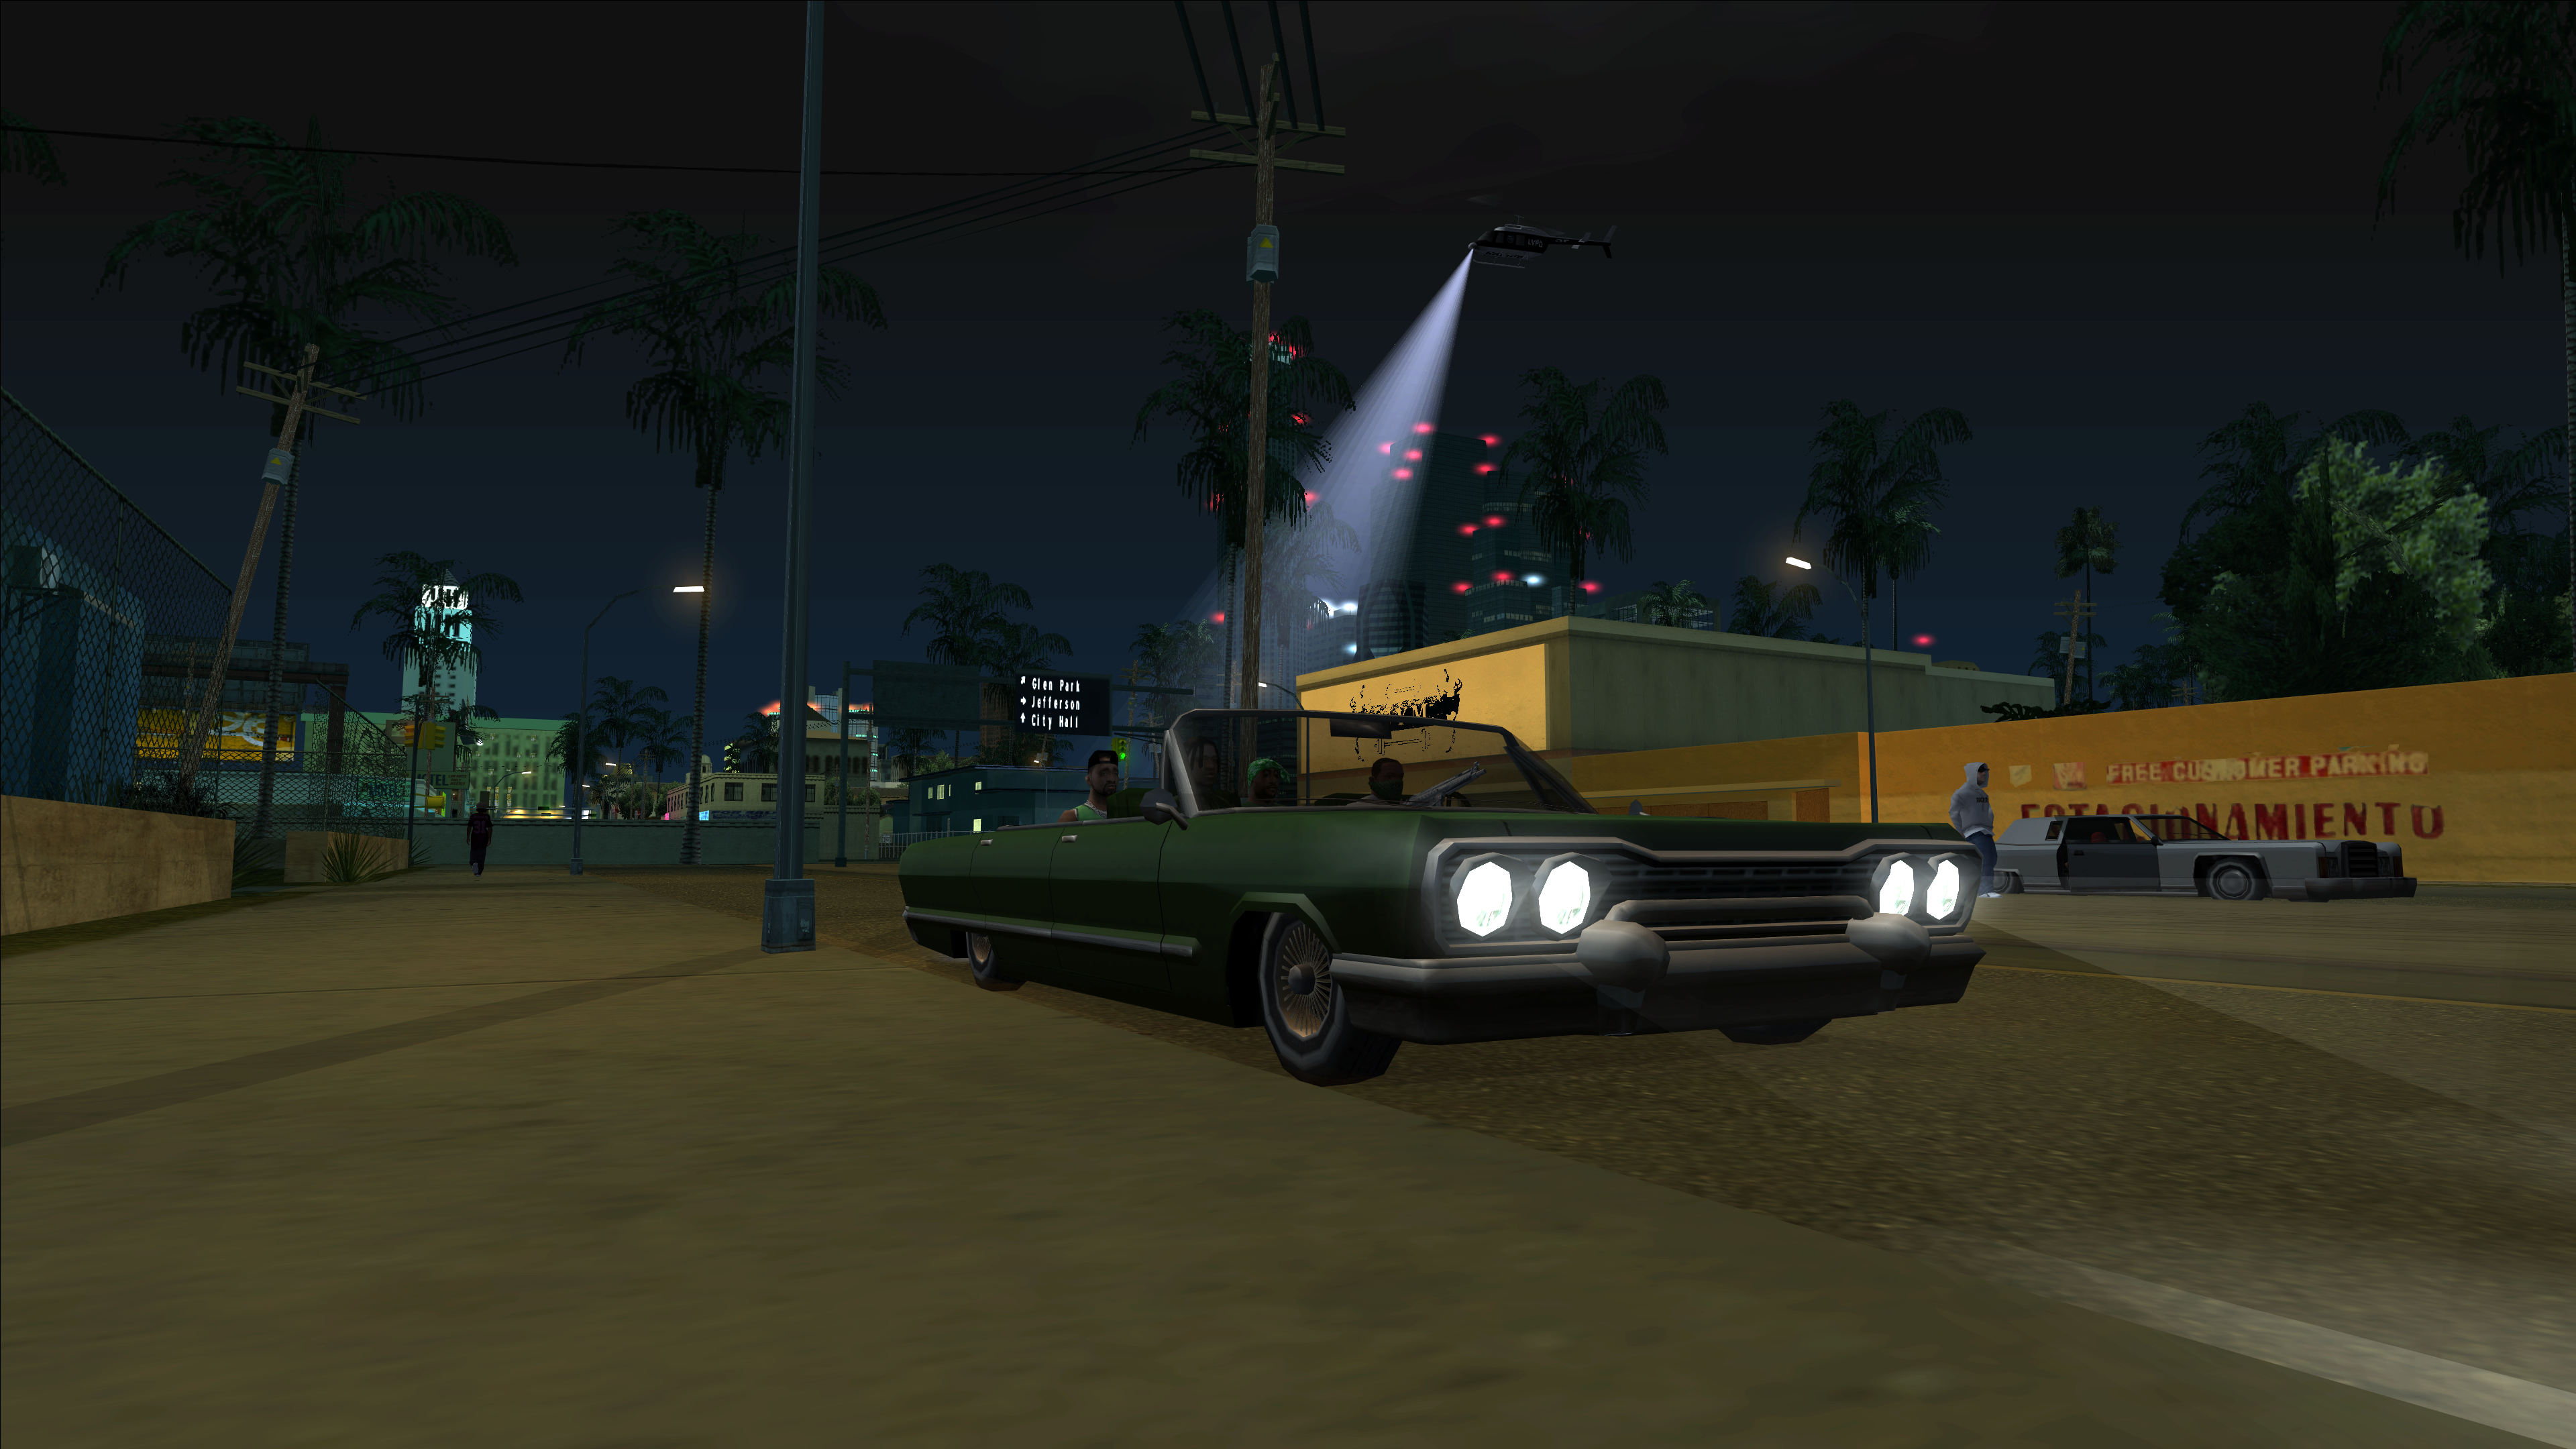 Grand-Theft-Auto-San-Andreas-Screenshot-2021-01-26-01-26-42-85.png